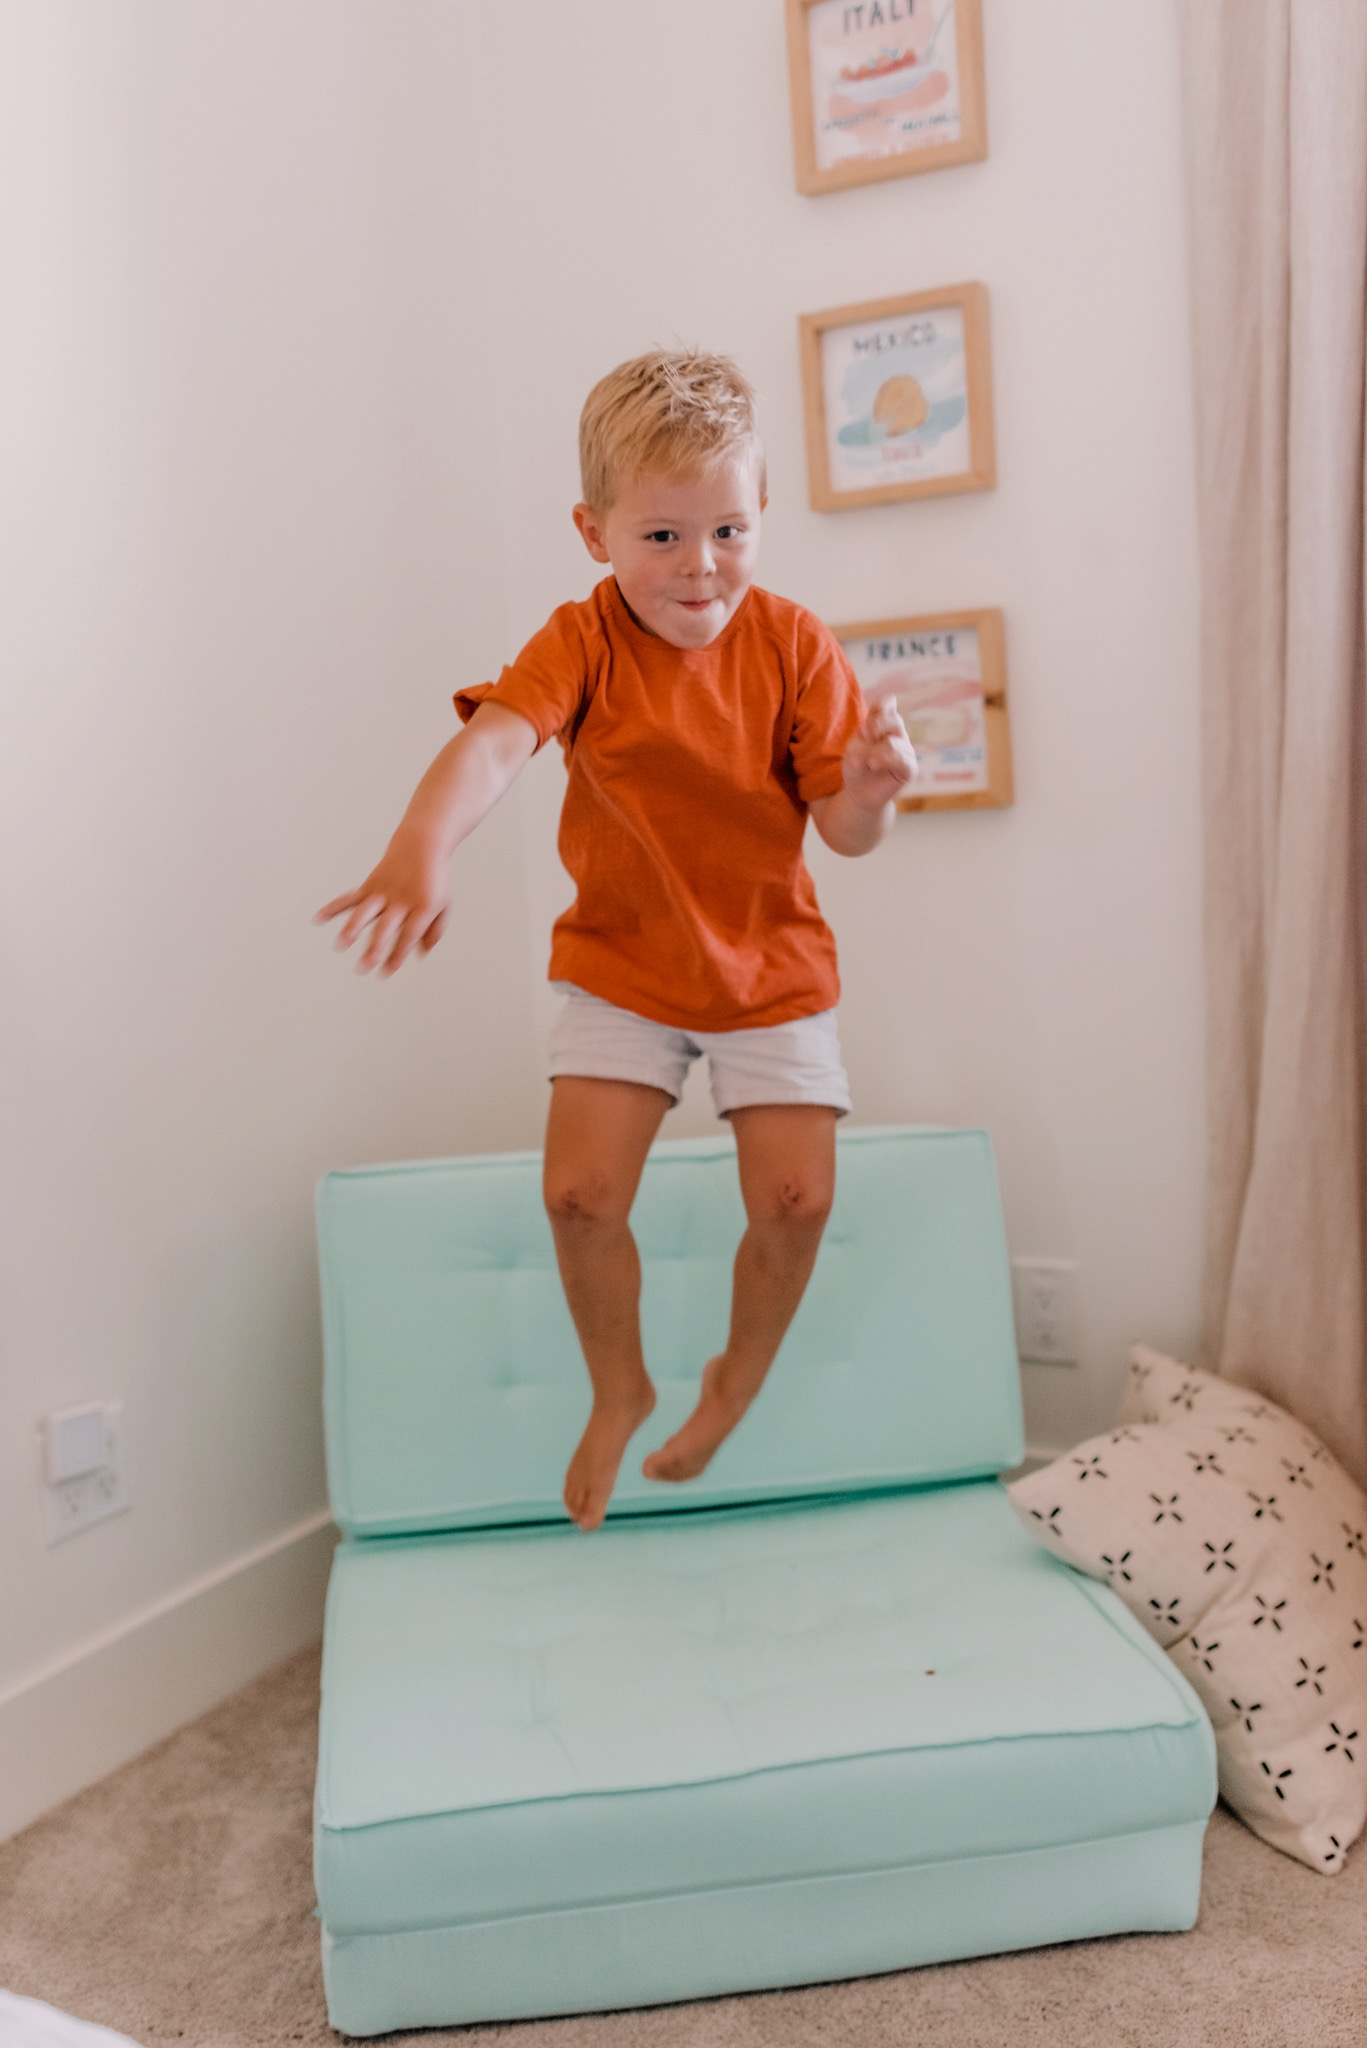 Walmart Decor by popular San Diego life and style blog, Navy Grace: image of a young boy jumping on a blue chair next to some framed world country prints.